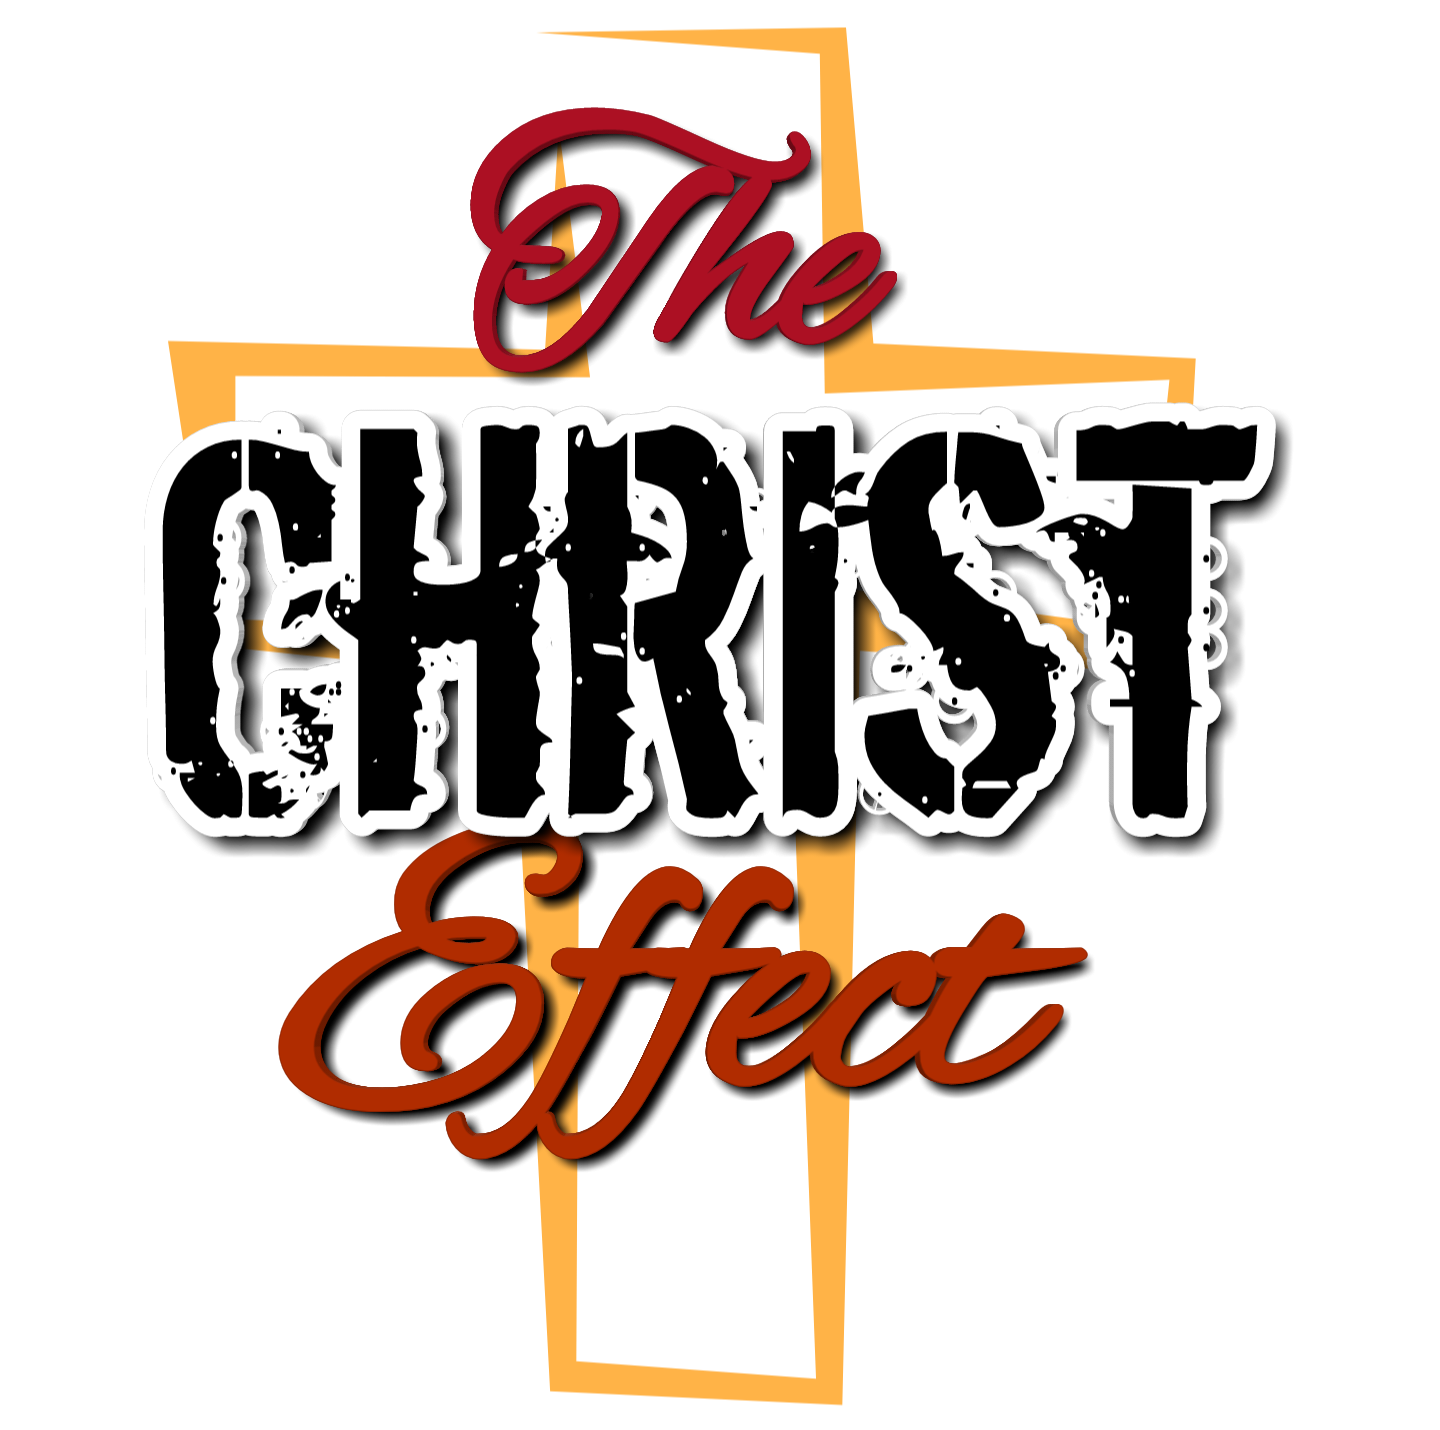 The Christ Effect